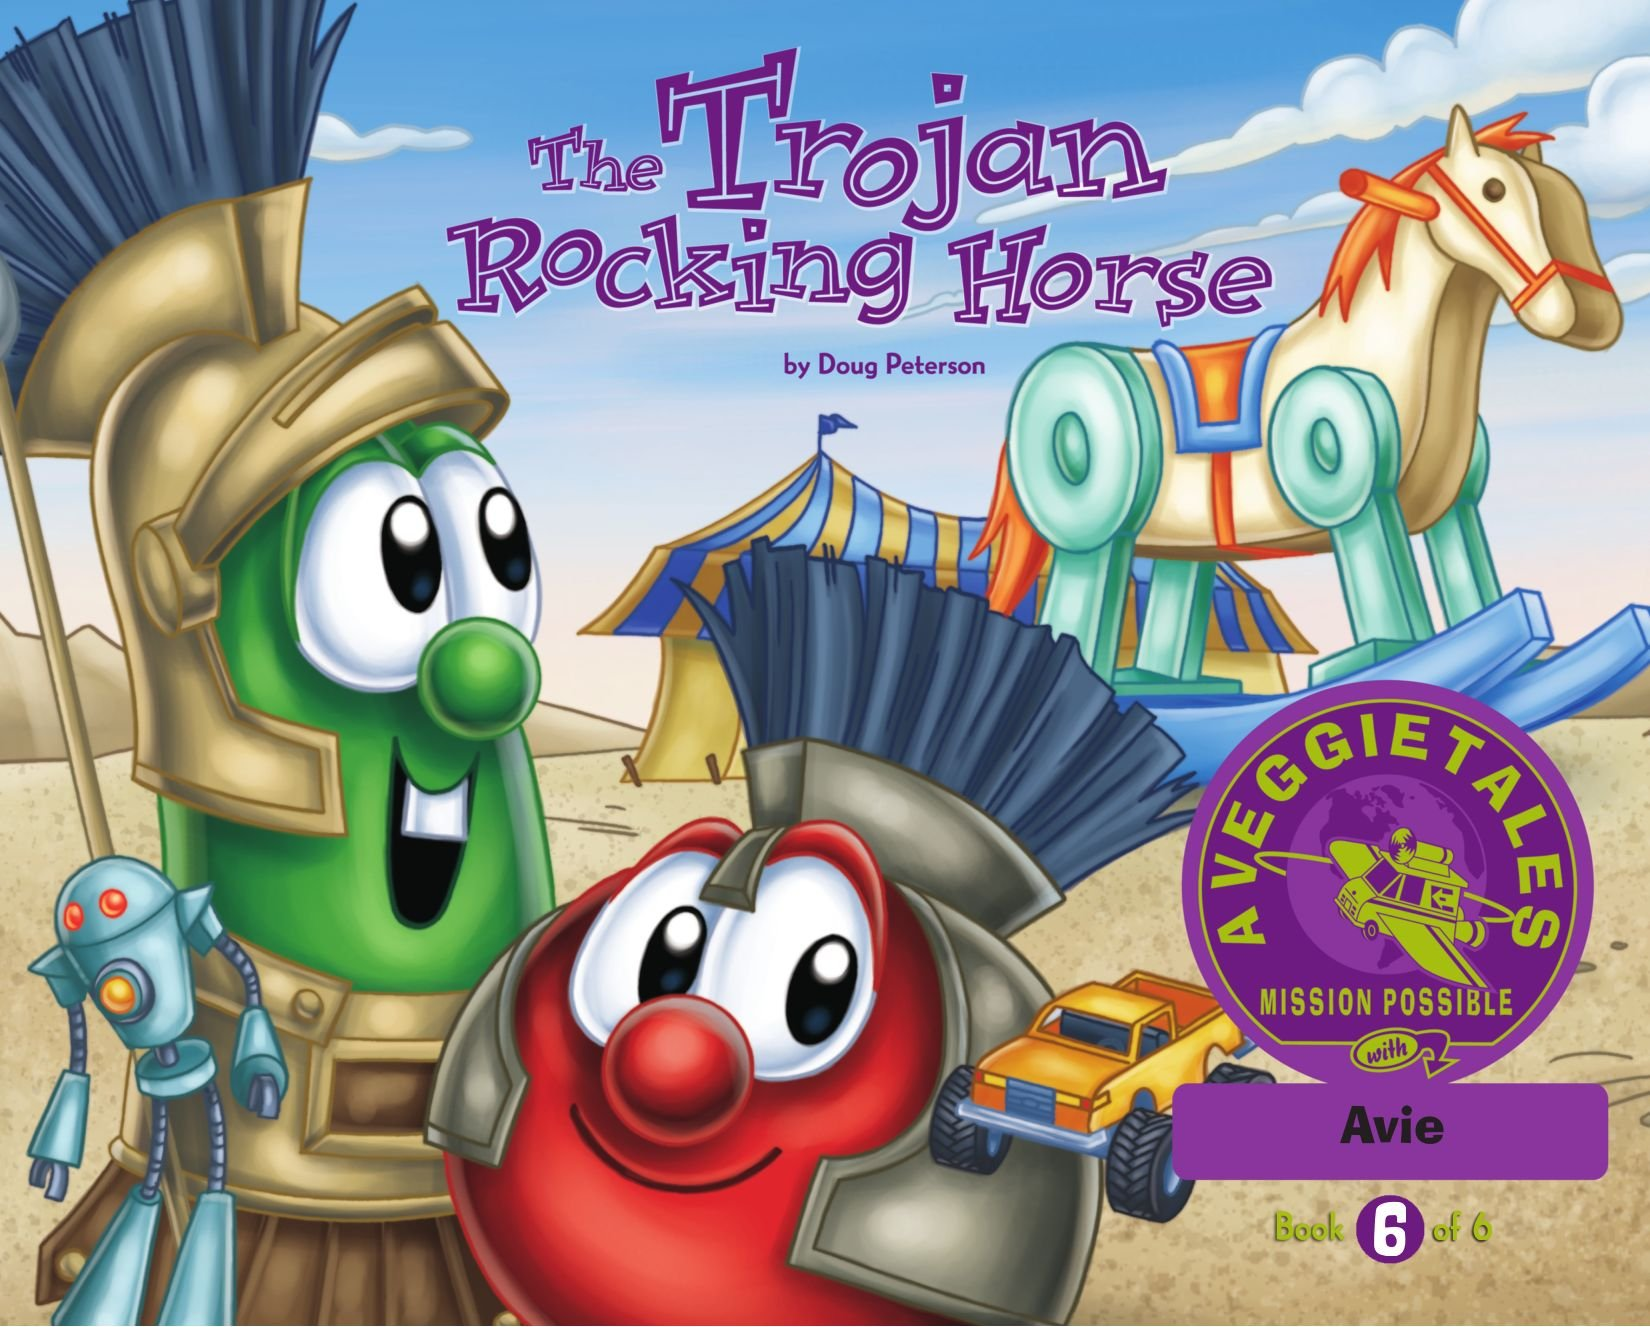 The Trojan Rocking Horse - VeggieTales Mission Possible Adventure Series #6: Personalized for Avie (Boy) pdf epub